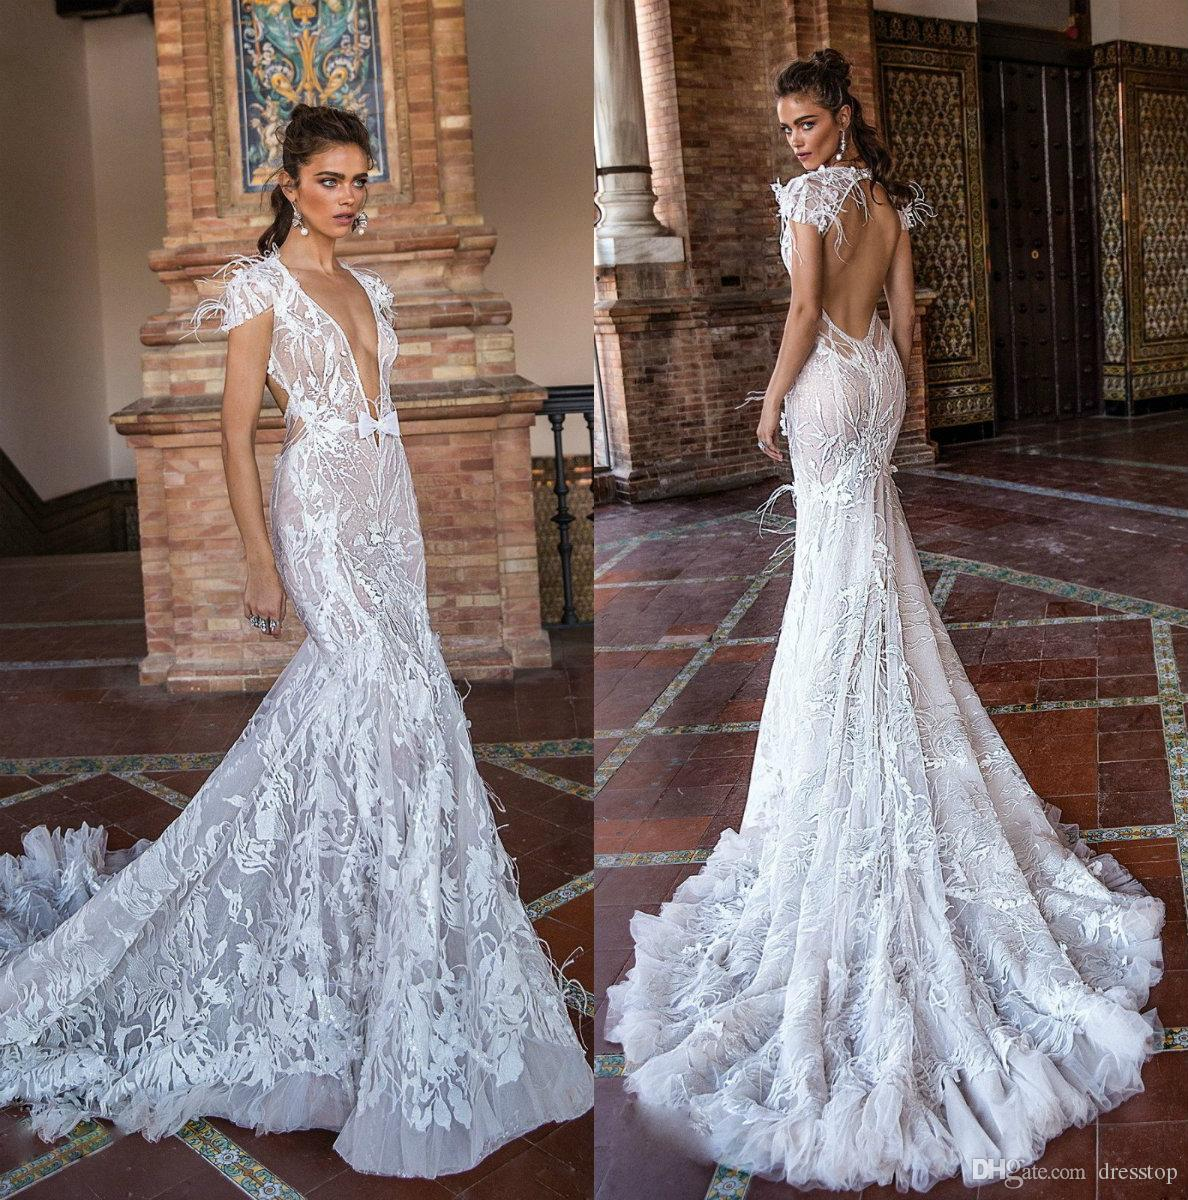 Berta 2019 Mermaid Wedding Dresses V Neck Backless Lace Bridal Gowns With  Feathers Sweep Train Beach Wedding Dress Mermaid Dresses Wedding Mermaid